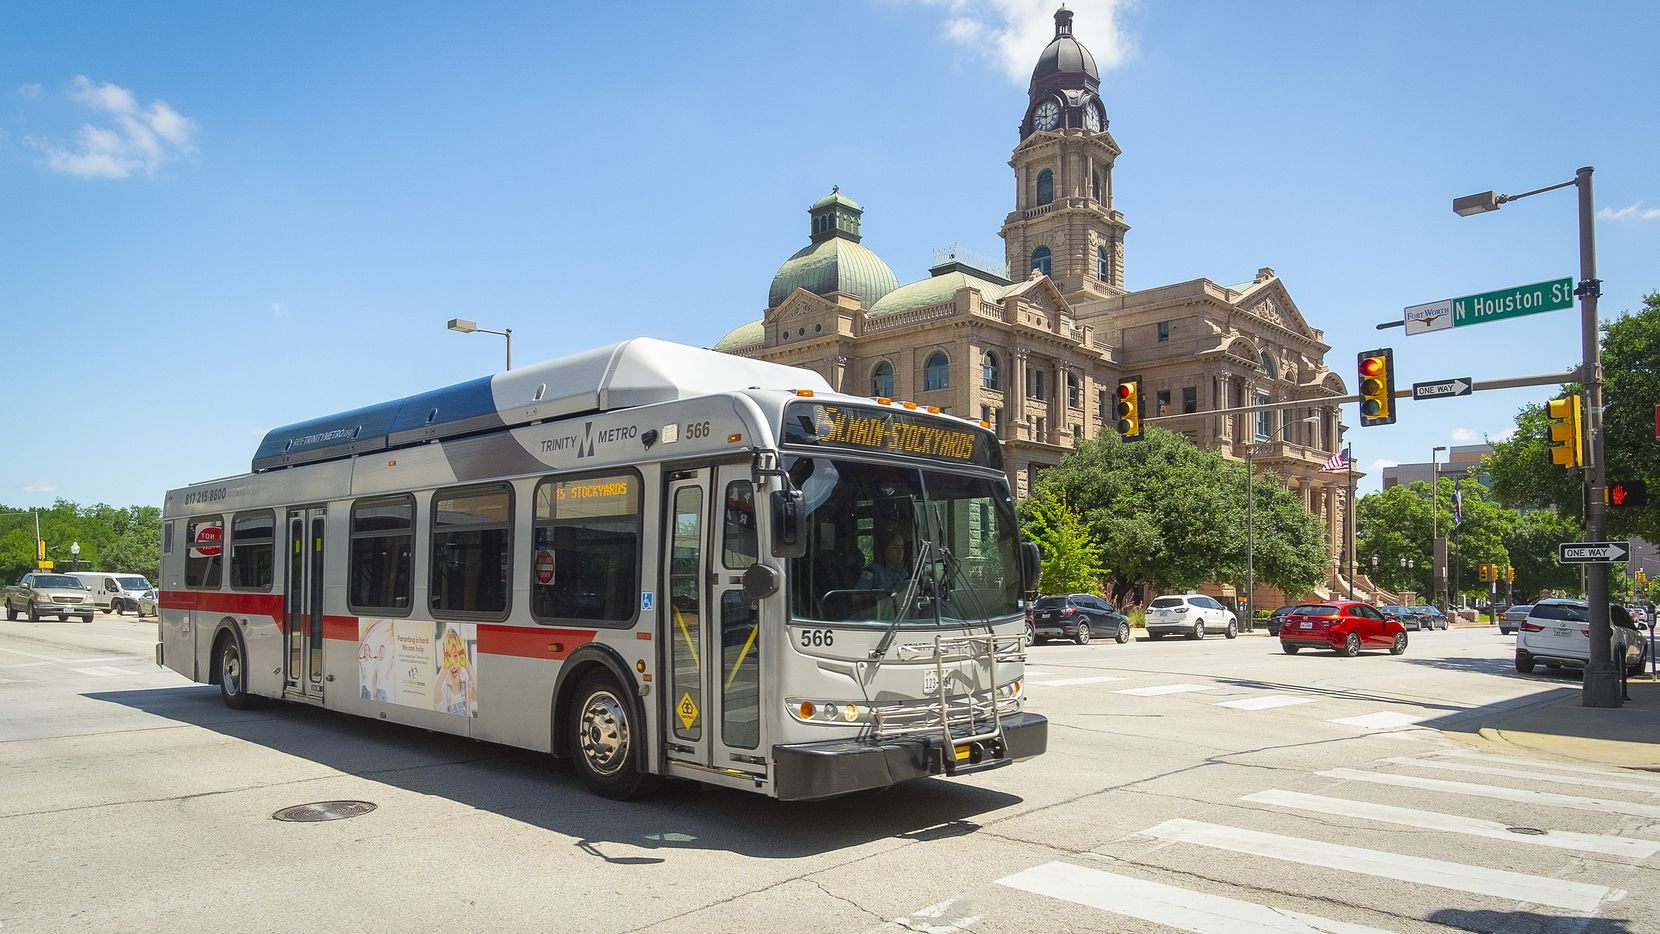 A Trinity Metro bus passes the Tarrant County Courthouse. May 30, 2019. The Tarrant County bus service is offering free rides to COVID-19 vaccination sites.